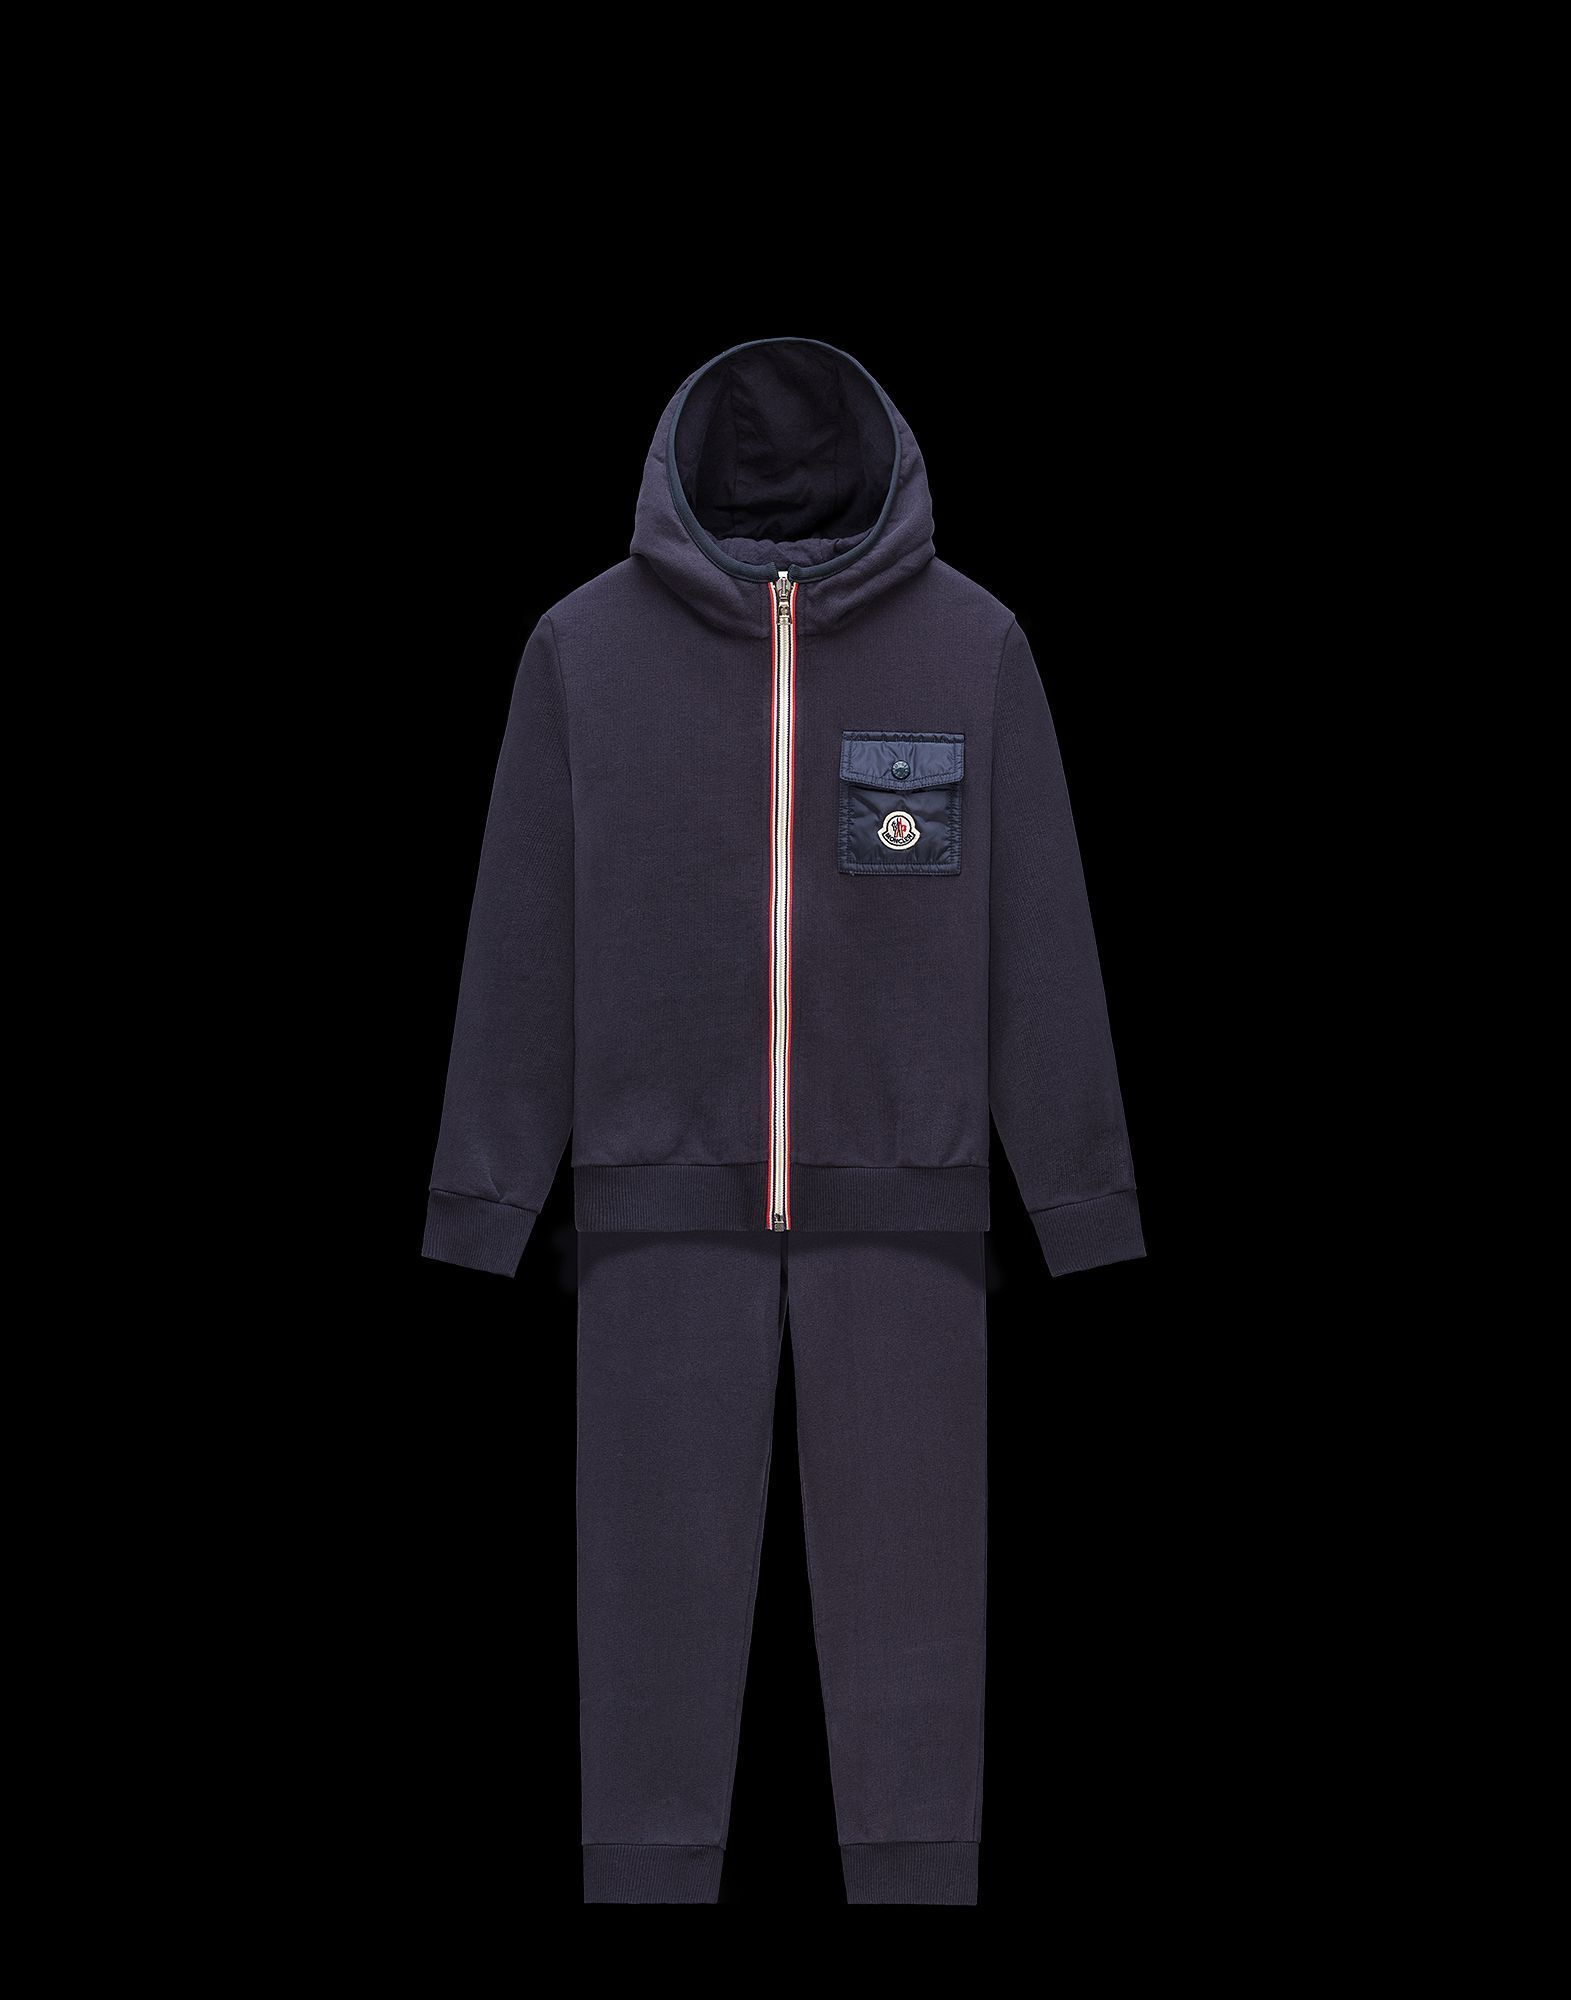 MONCLER2017/18秋冬新作ジュニアパーカー&パンツセット 12A/14A